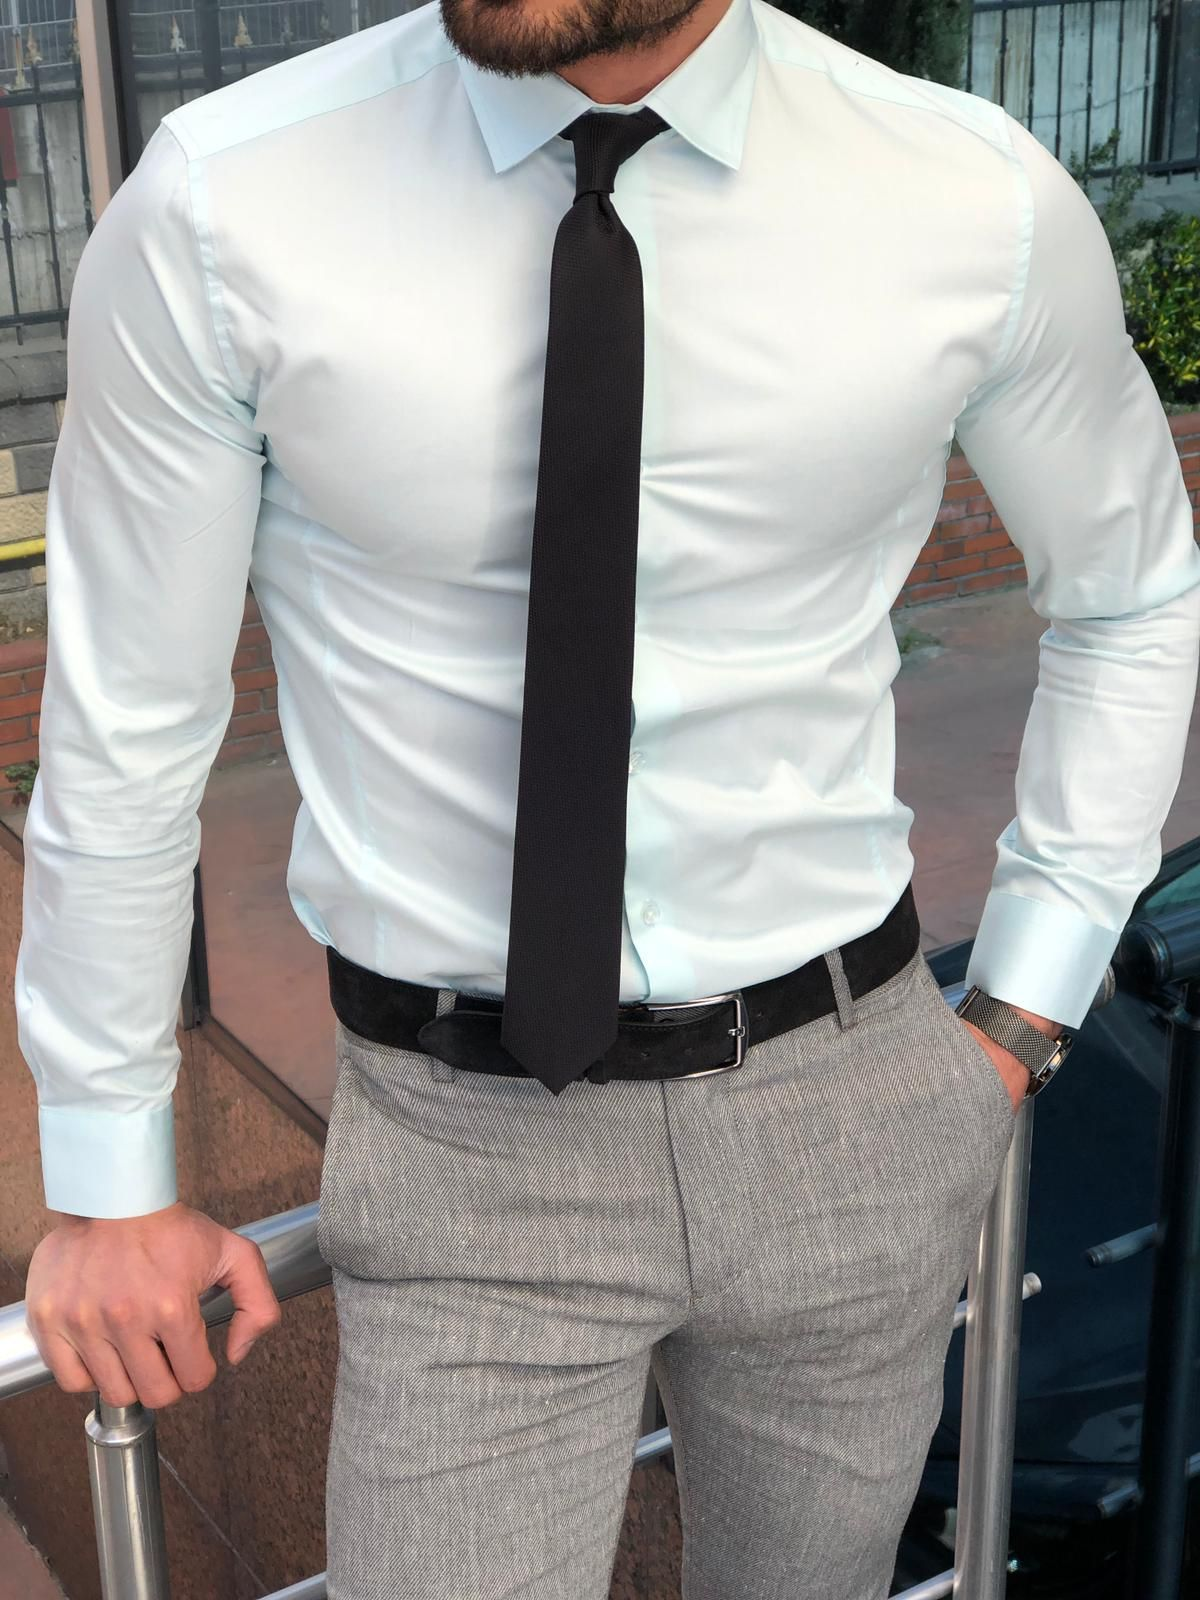 Buy Mint Green Slim Fit Dress Shirt By Gentwith Com With Free Shipping Business Attire For Men Stylish Mens Outfits Mens Dress Outfits